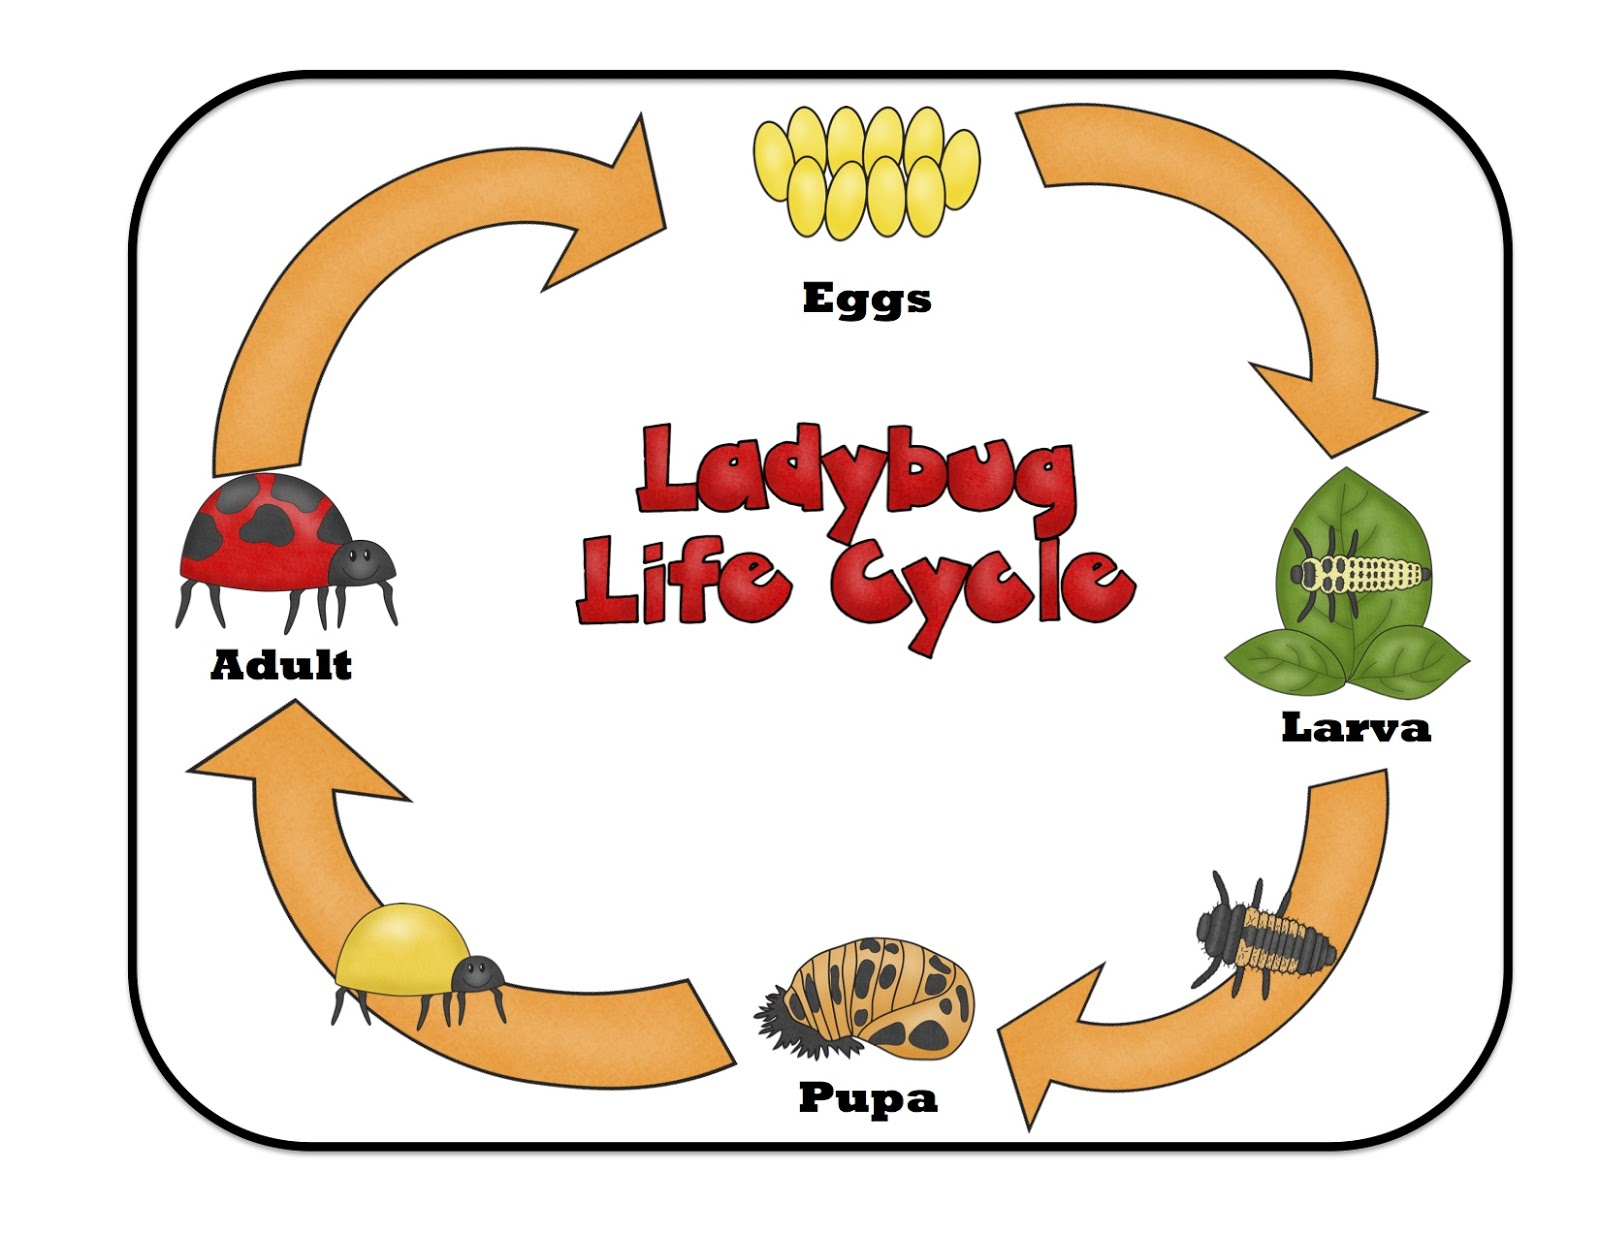 octopus food chain diagram 2003 ford f250 radio wiring seahorse life cycle get free image